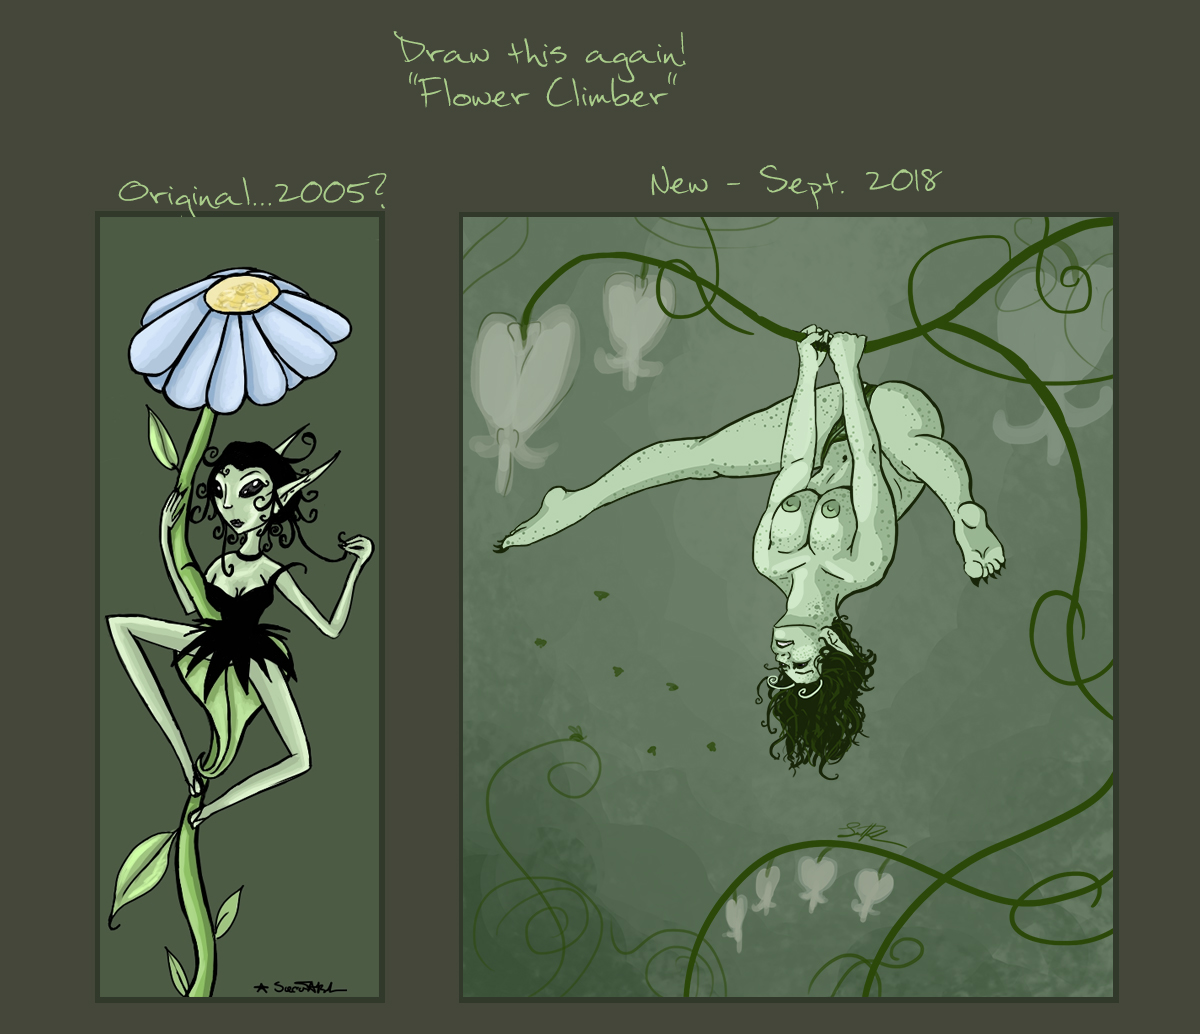 draw_this_again_meme____flower_climber_by_delithicious-dcng85v.jpg